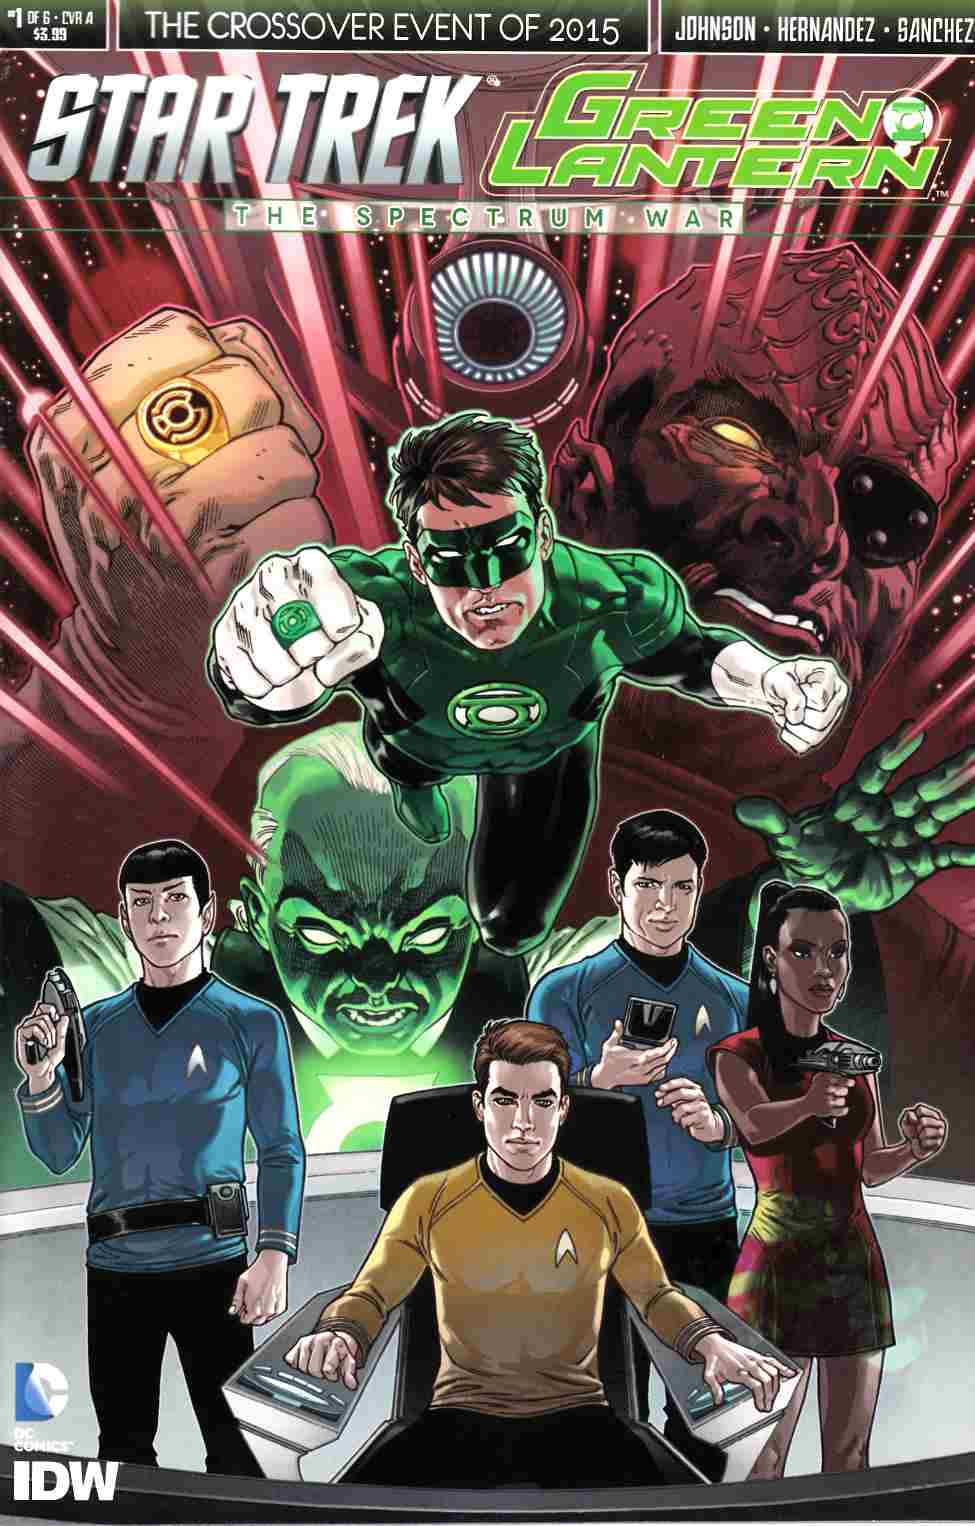 Star Trek Green Lantern #1 Cover A- Rodriguez [IDW Comic]